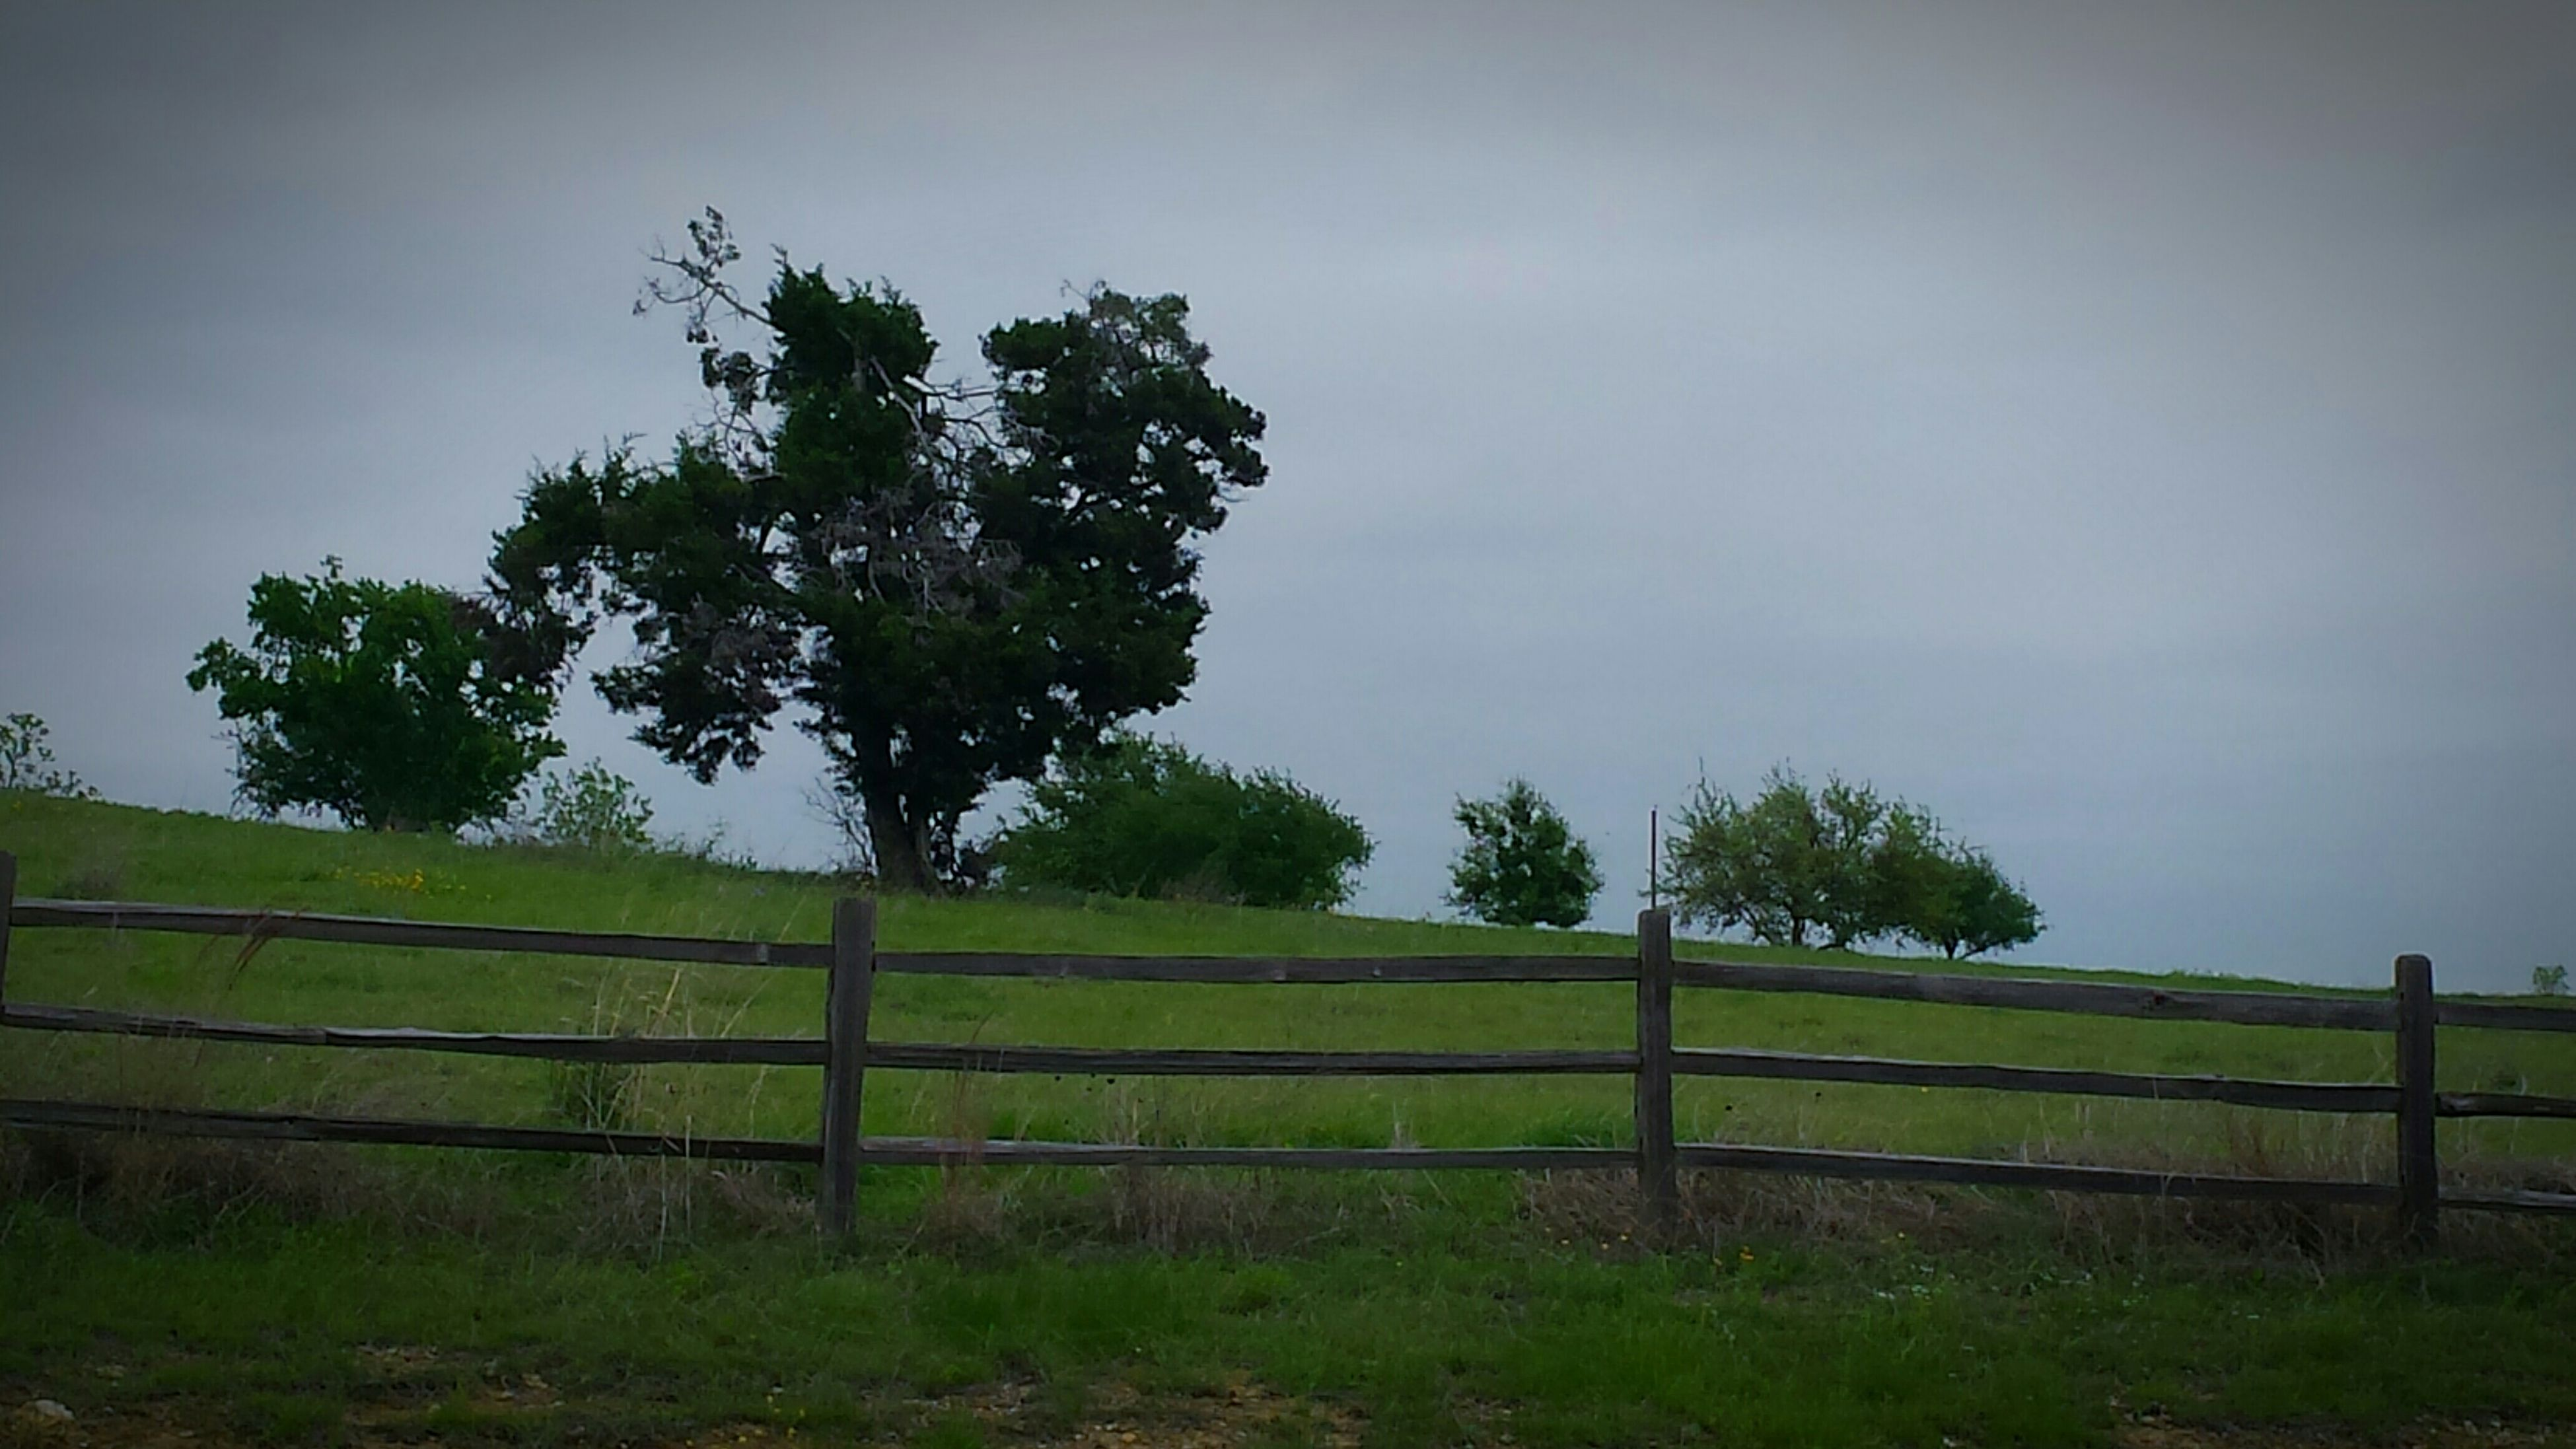 fence, tree, sky, field, tranquility, landscape, grass, railing, tranquil scene, growth, nature, beauty in nature, protection, green color, grassy, scenics, no people, outdoors, clear sky, day